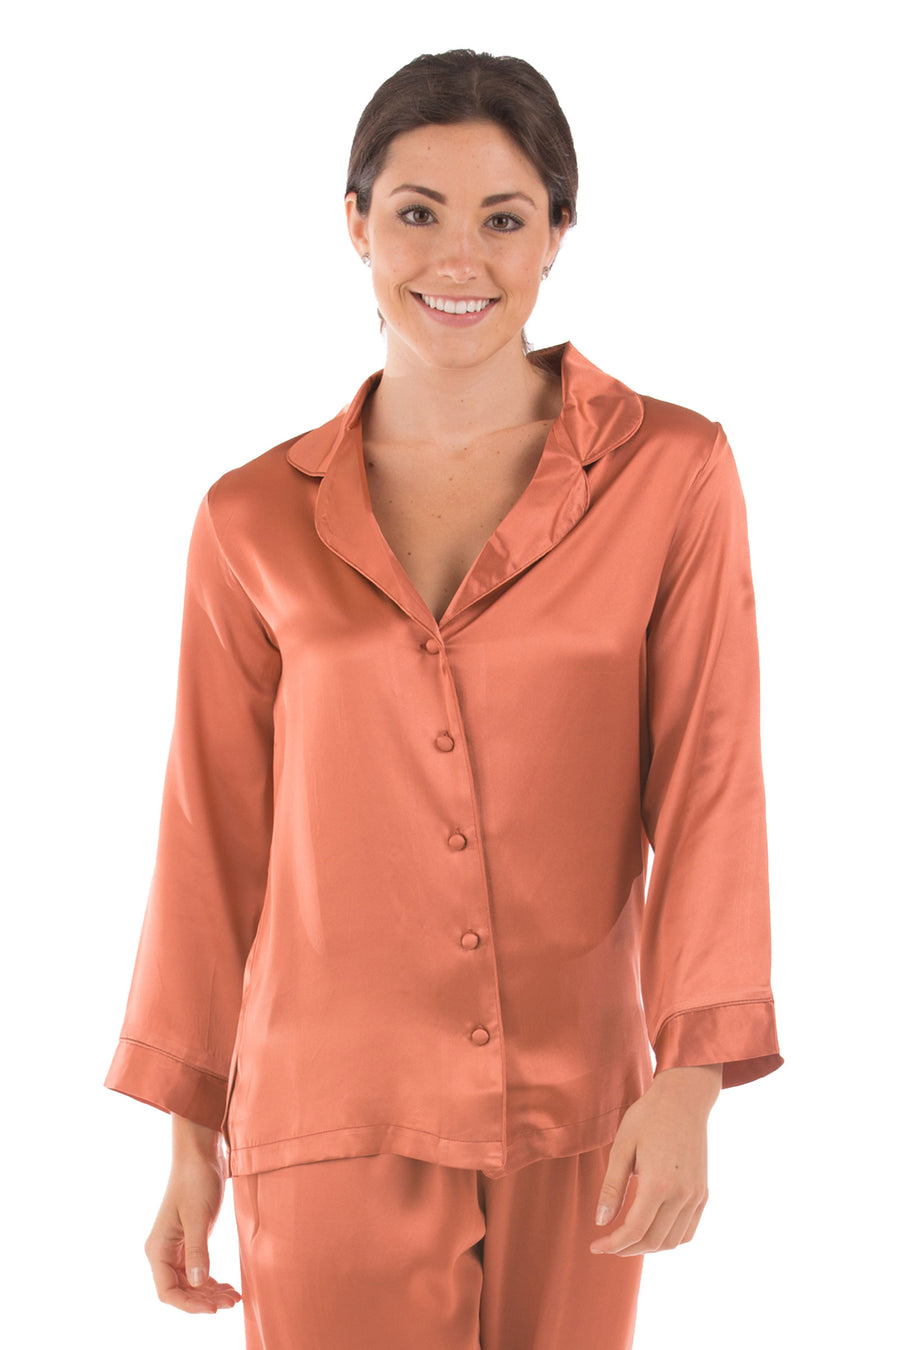 Morning Muse - Women's Silk PJ Top - Clearance - TexereSilk